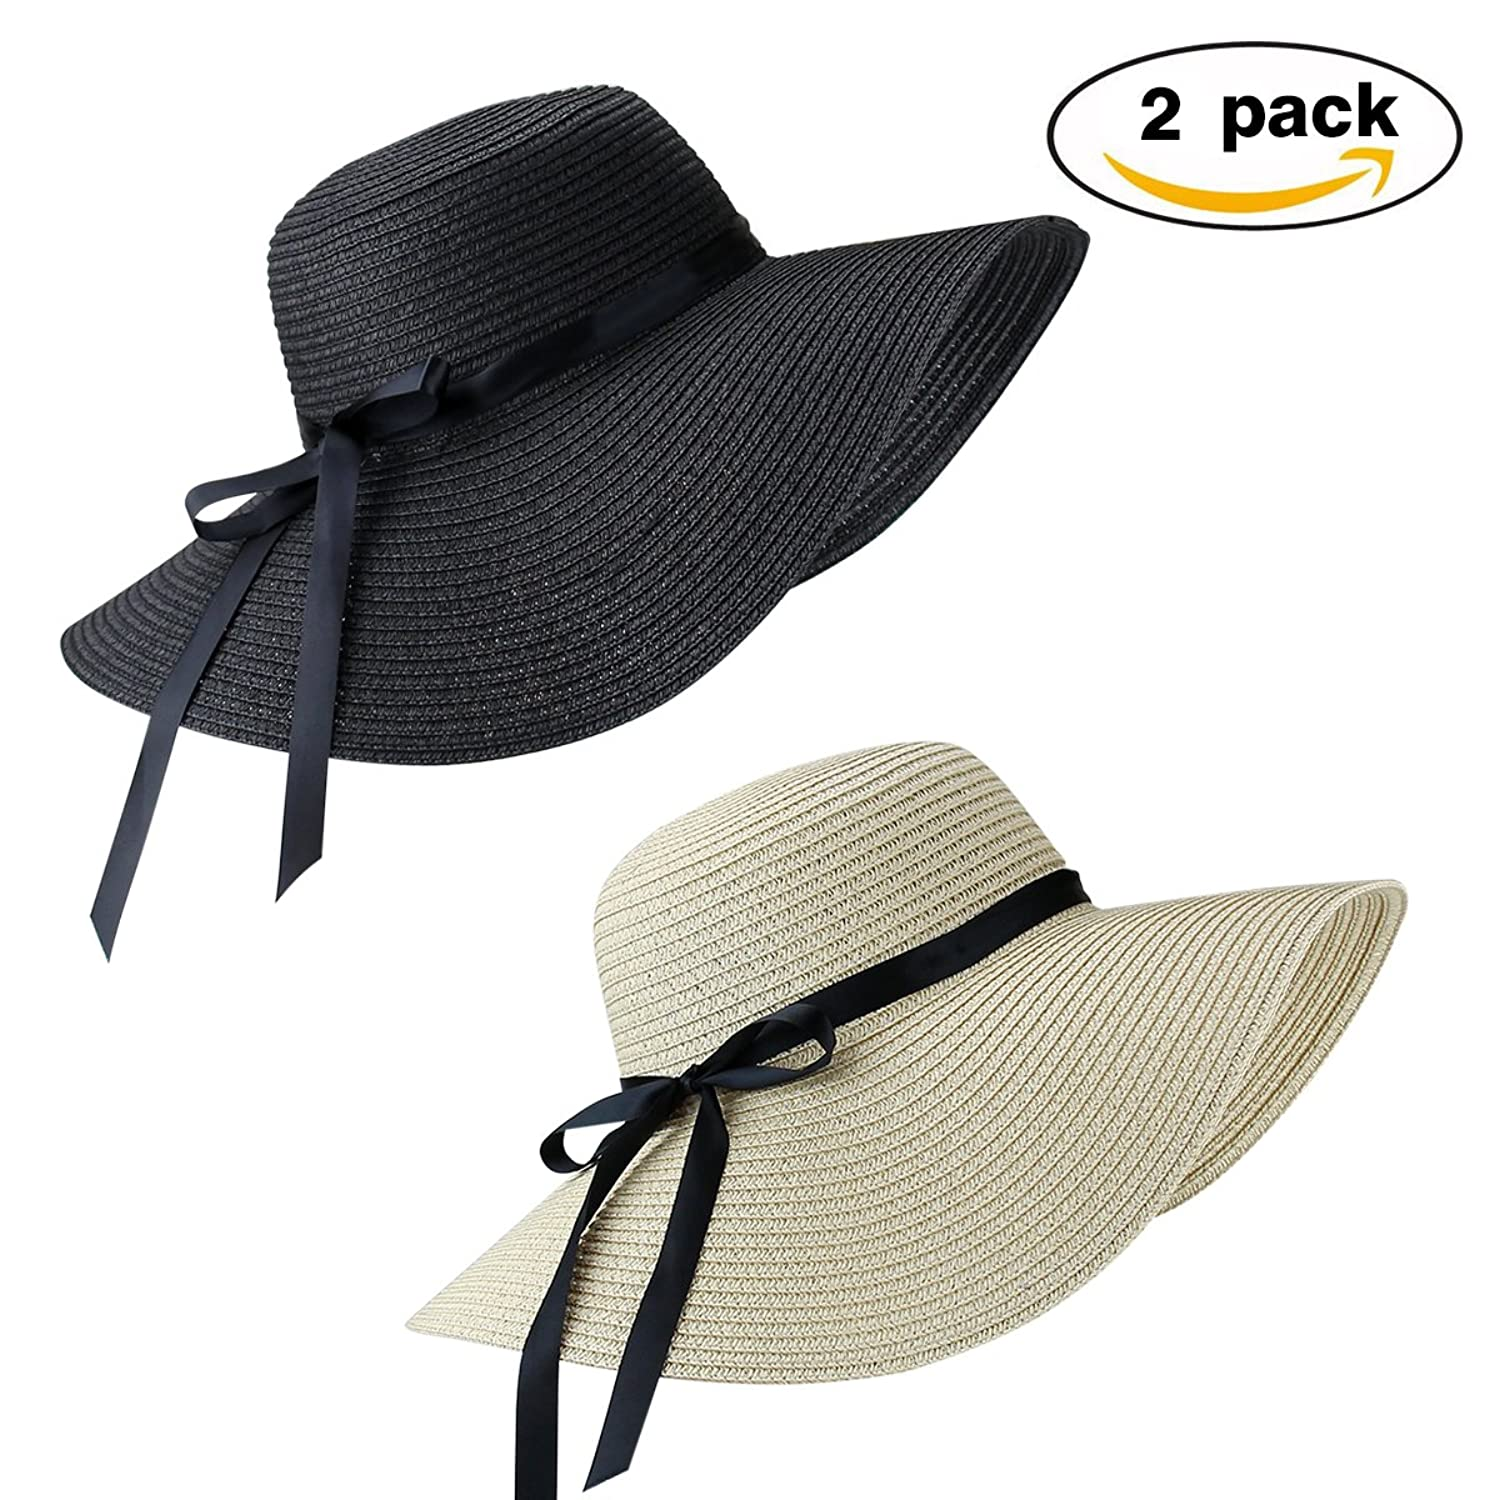 2 Pack Women's Sun Hat Foldable Large Wide Brim Straw Hat Summer Beach Cap UV Protection